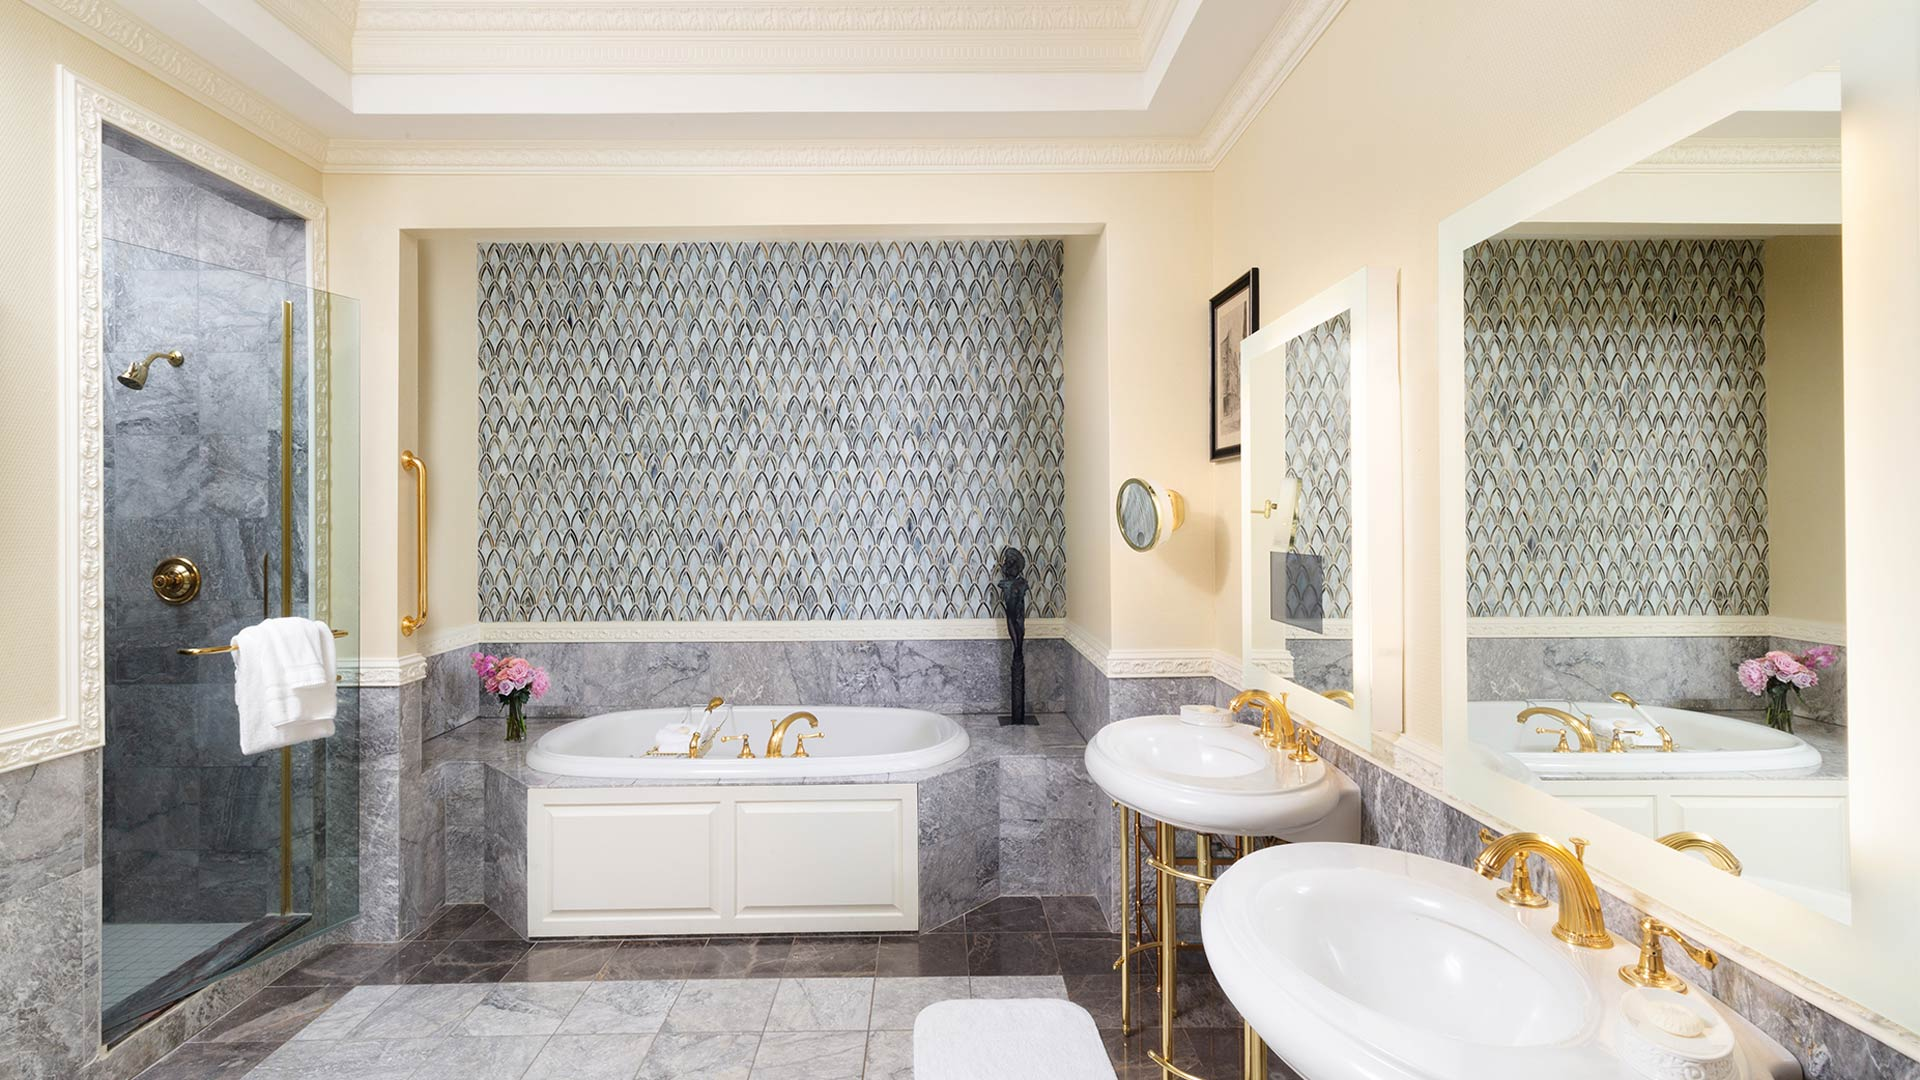 interior shot of the bathroom. There are two stand alone sinks with their own mirrors above them. There is a large walk-in shower and whirlpool bathtub.